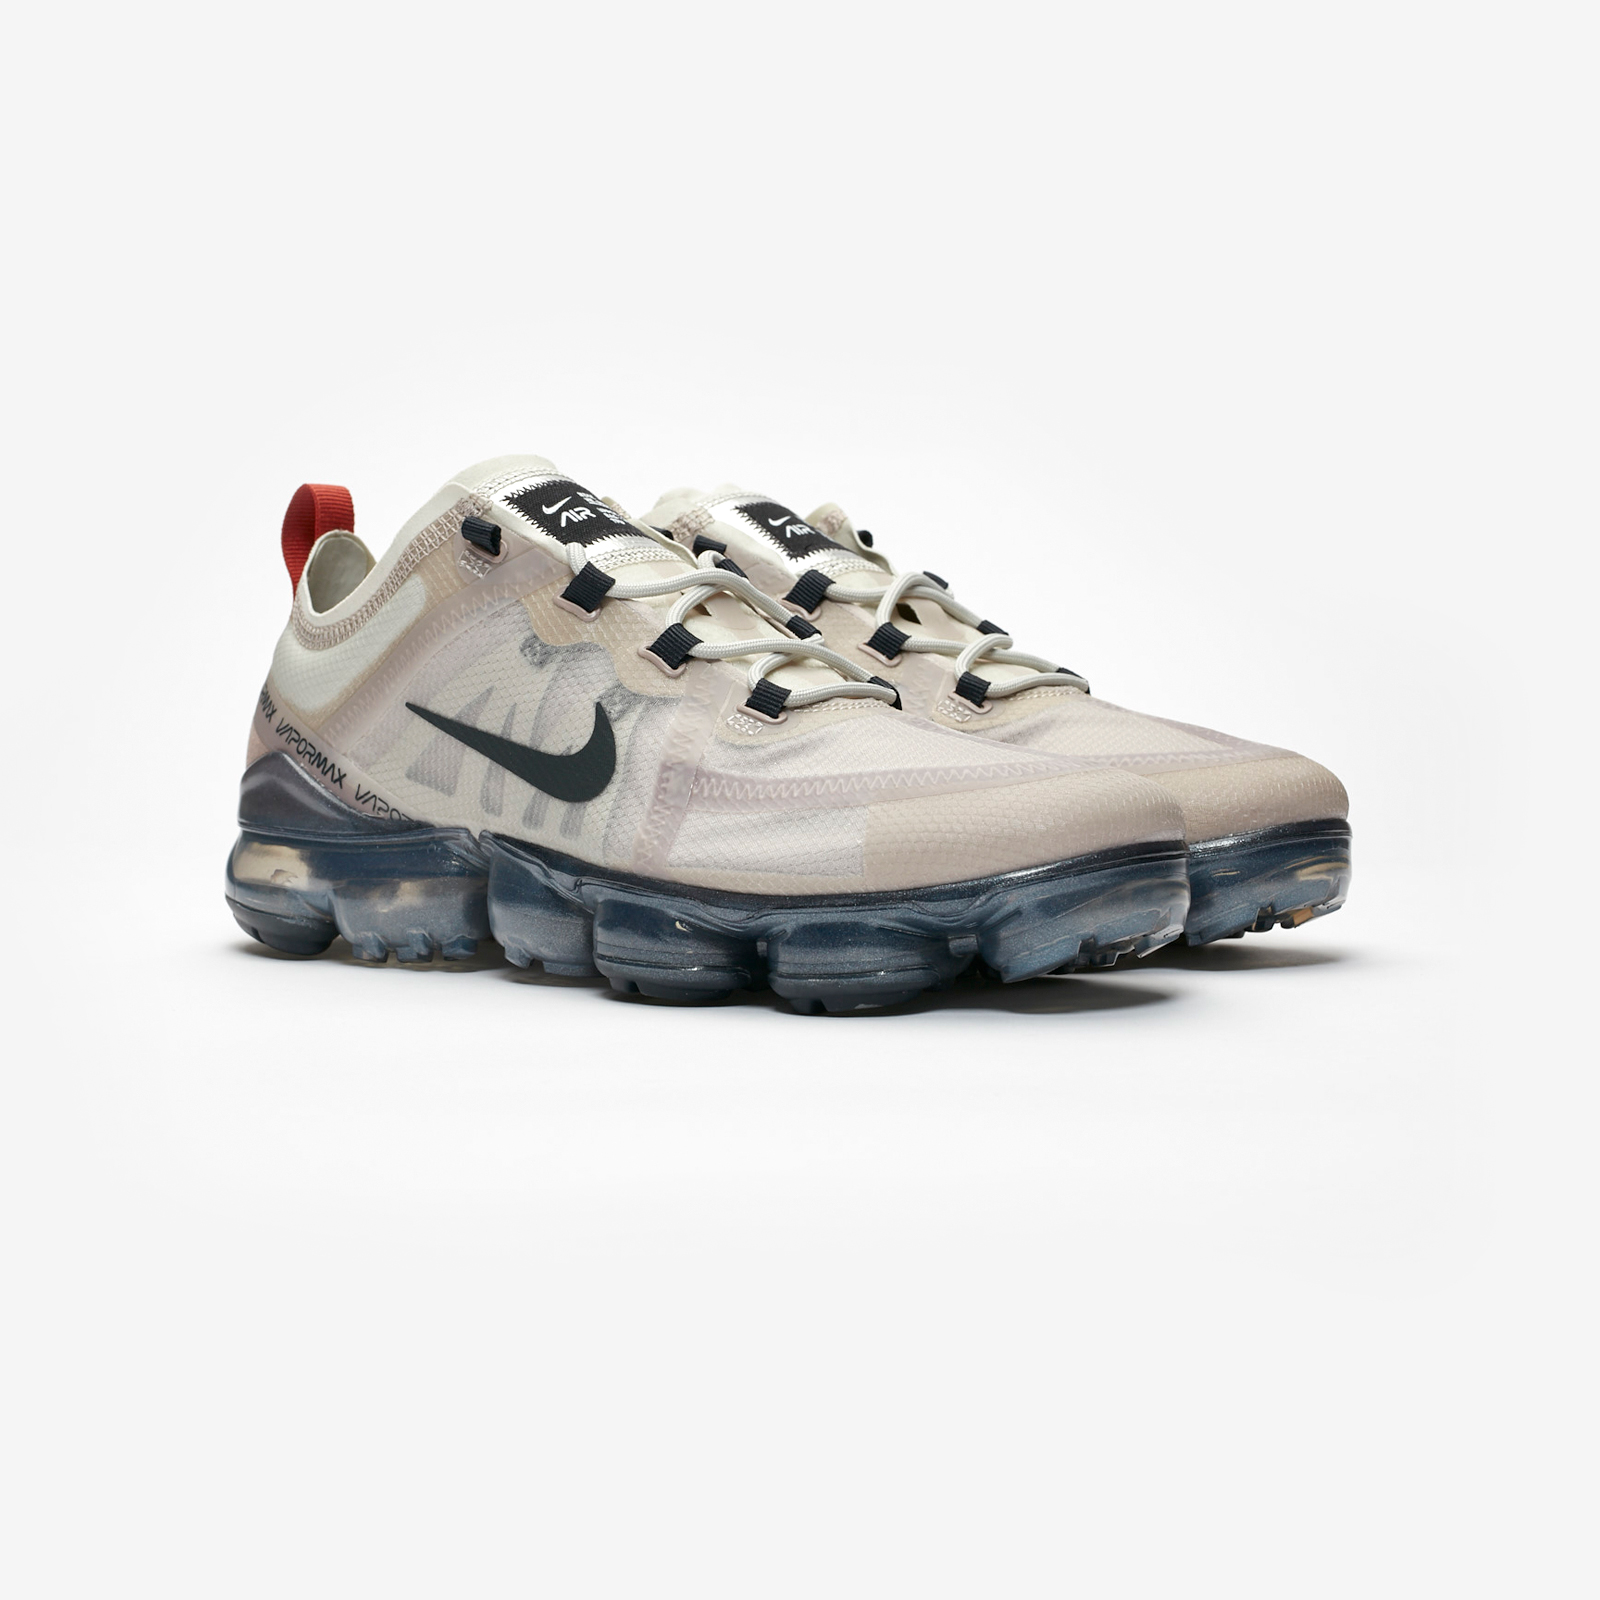 save off outlet store wholesale price Nike Air Vapormax 2019 - Ar6631-200 - Sneakersnstuff ...